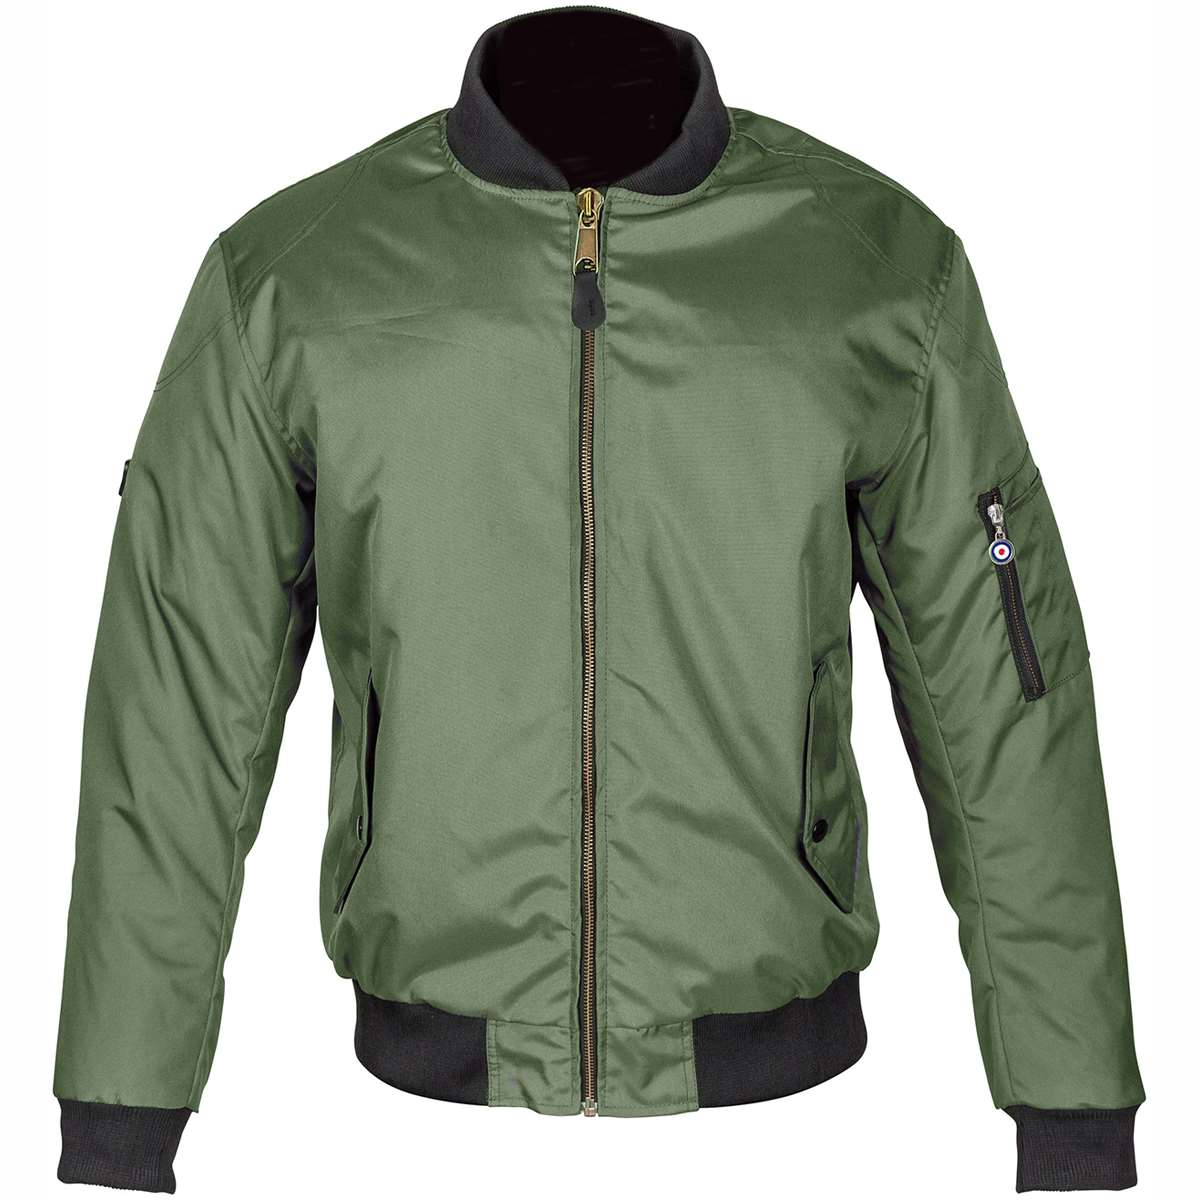 Spada Air Force One Motorcycle Waterproof CE Armour Bomber Jacket Casual Olive